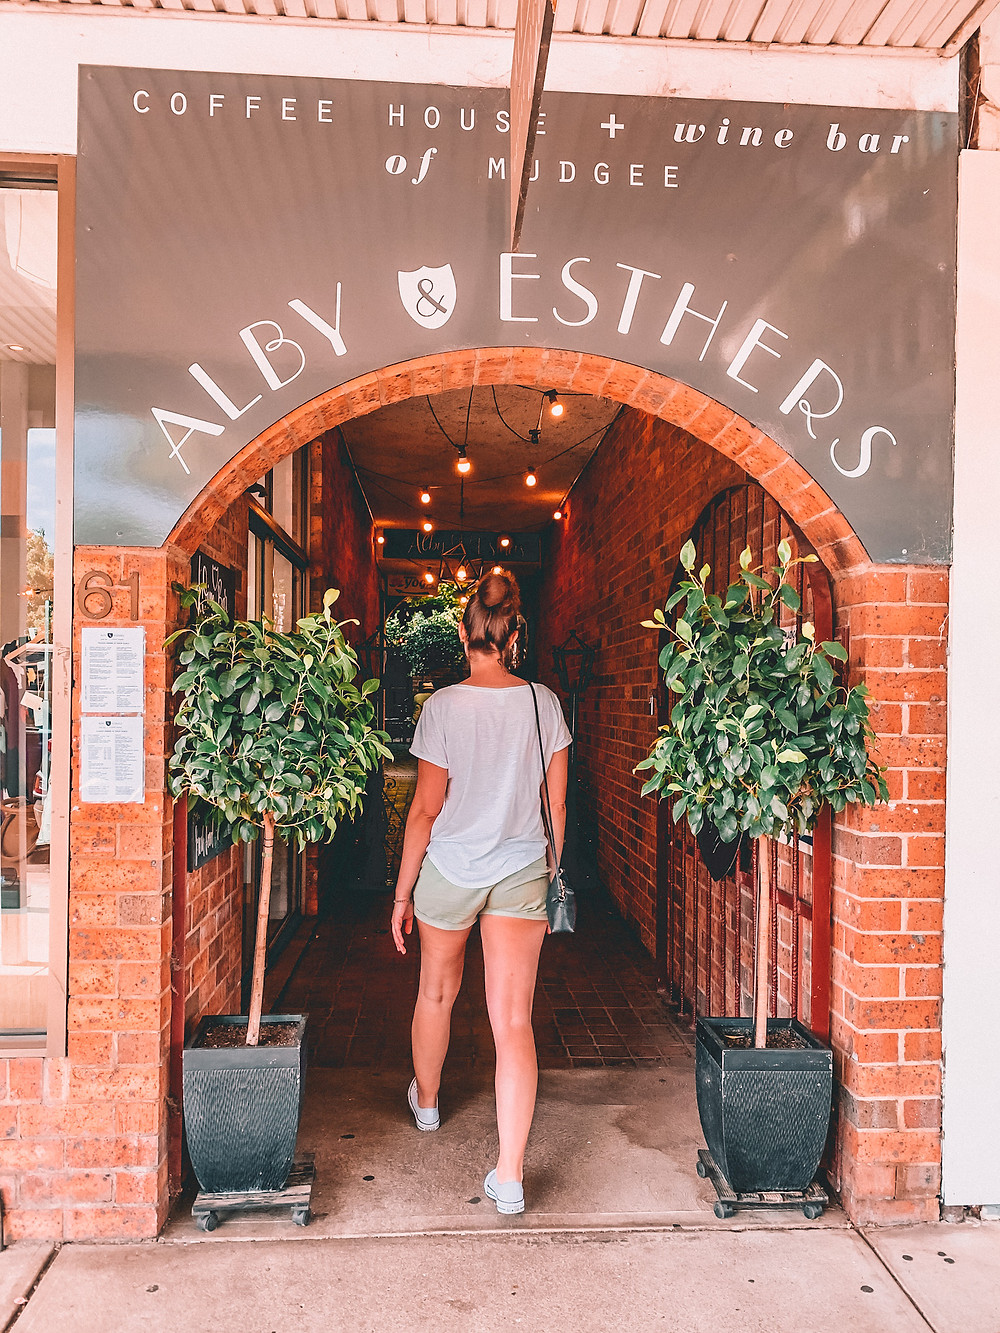 Entrance to a coffee shop in Mudgee